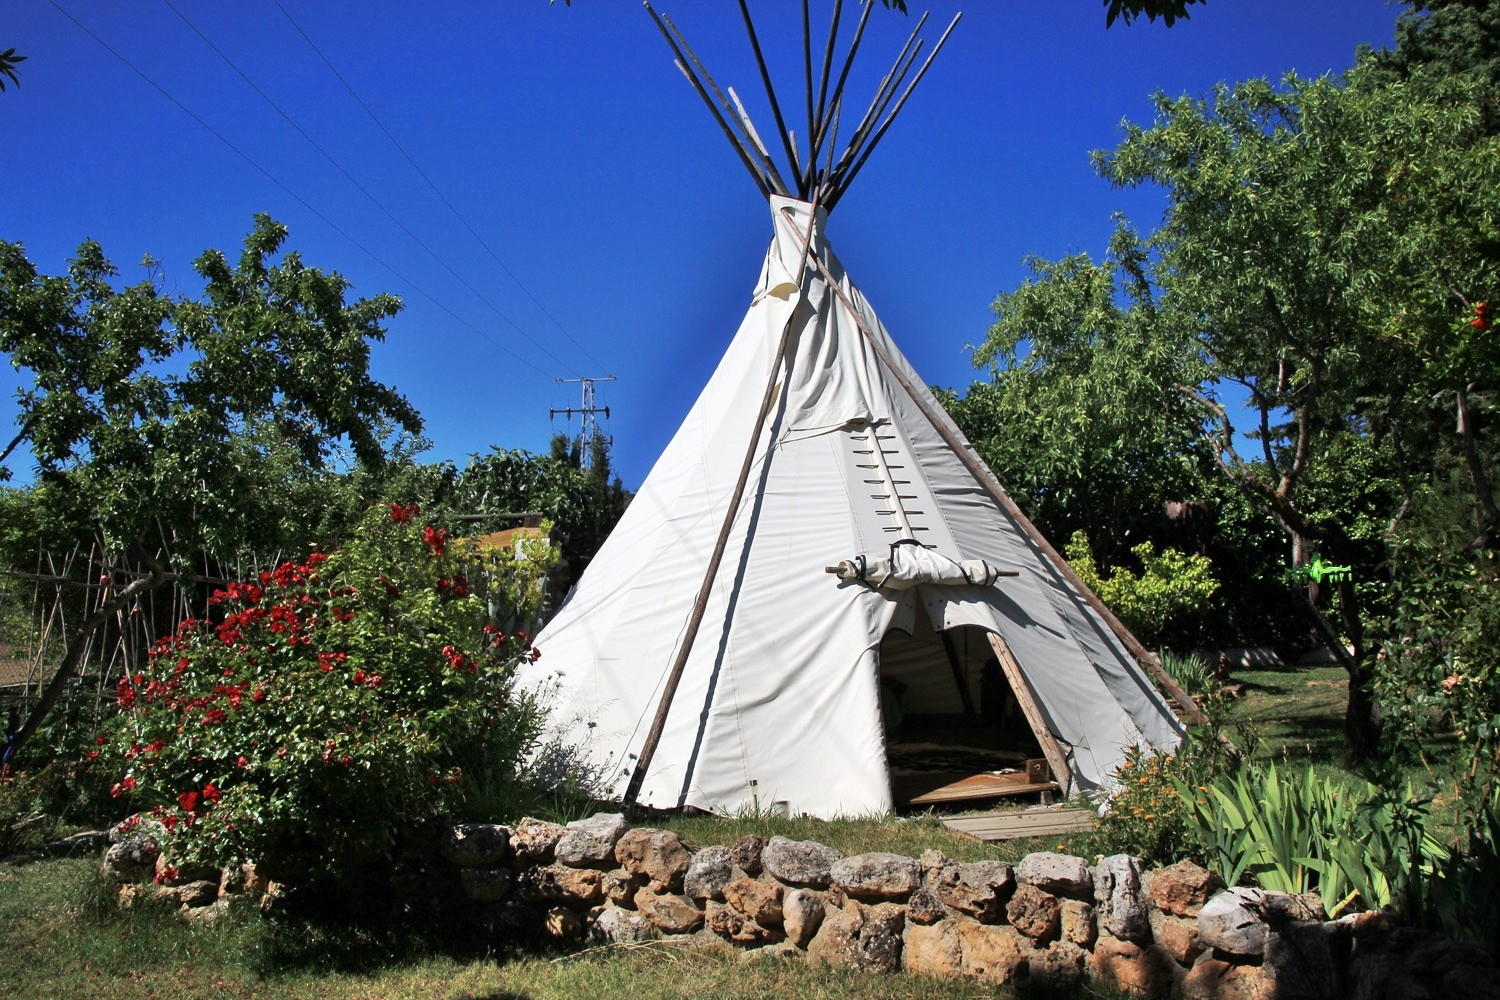 Front view of the Teepee